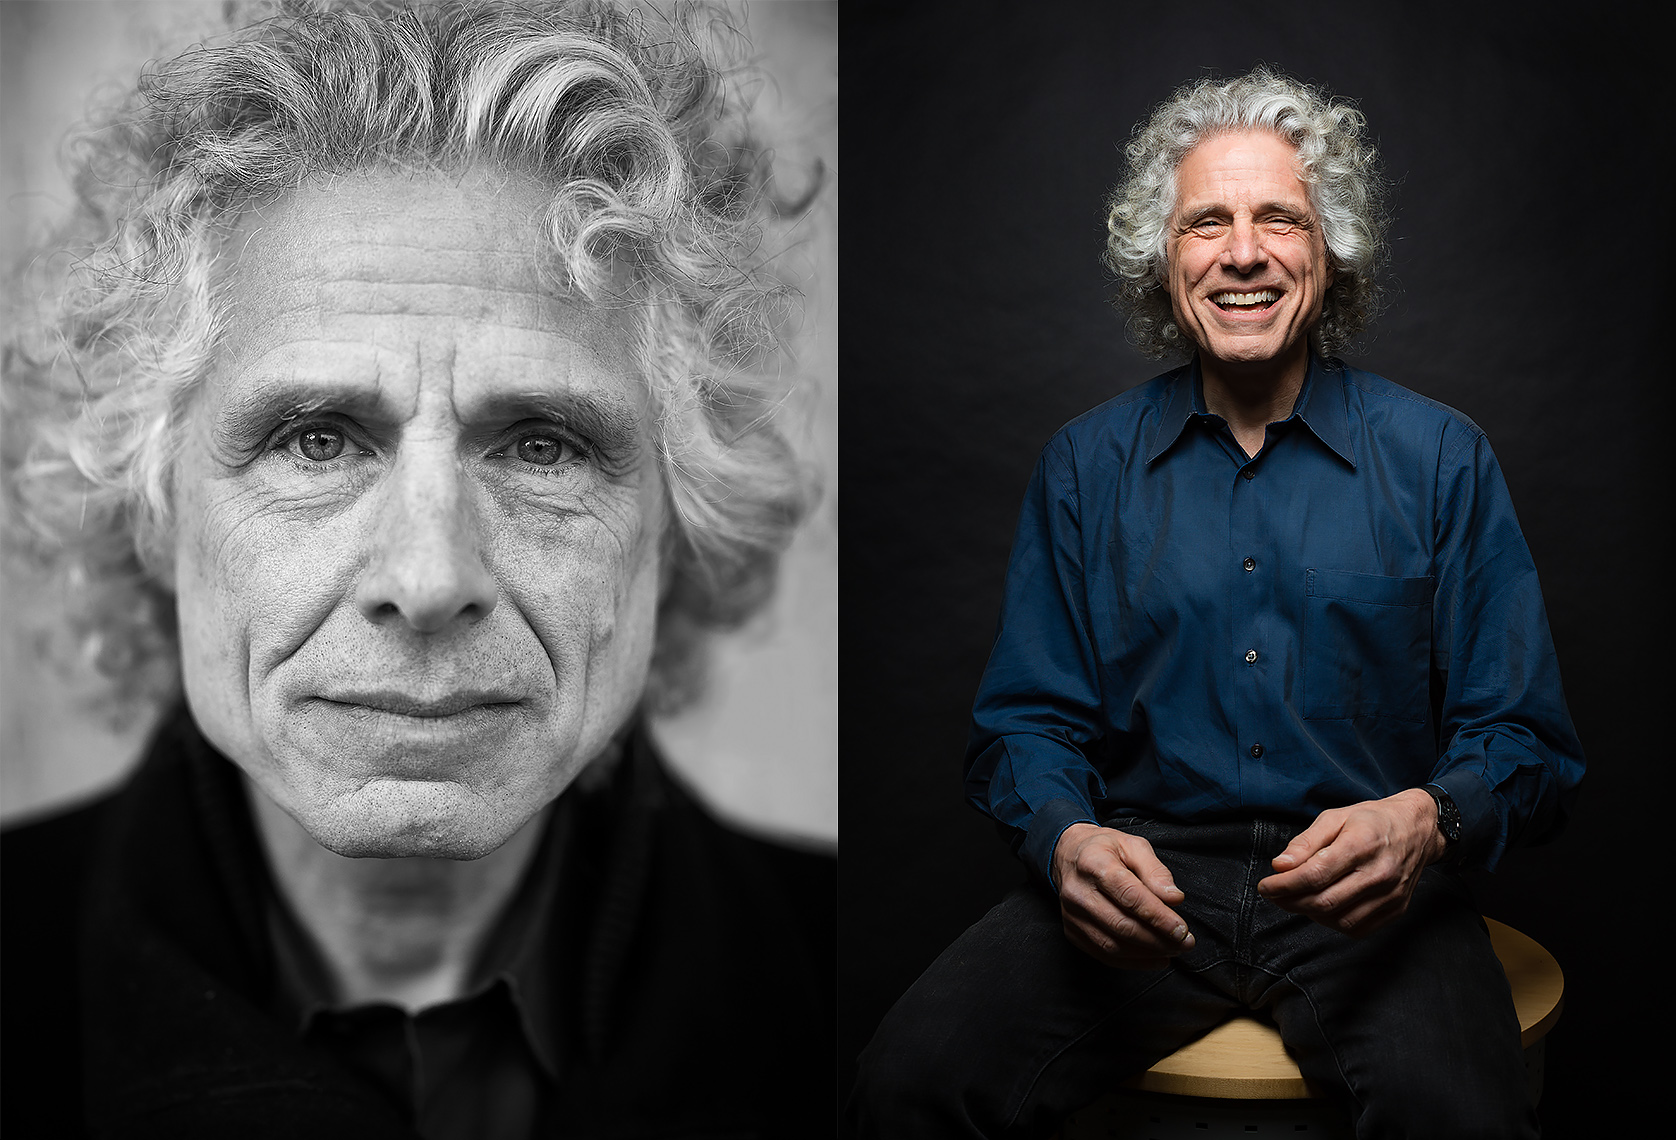 STEVEN PINKER, HARVARD UNIVERSITY • DER SPIEGEL • JASON GROW PHOTOGRAPHY